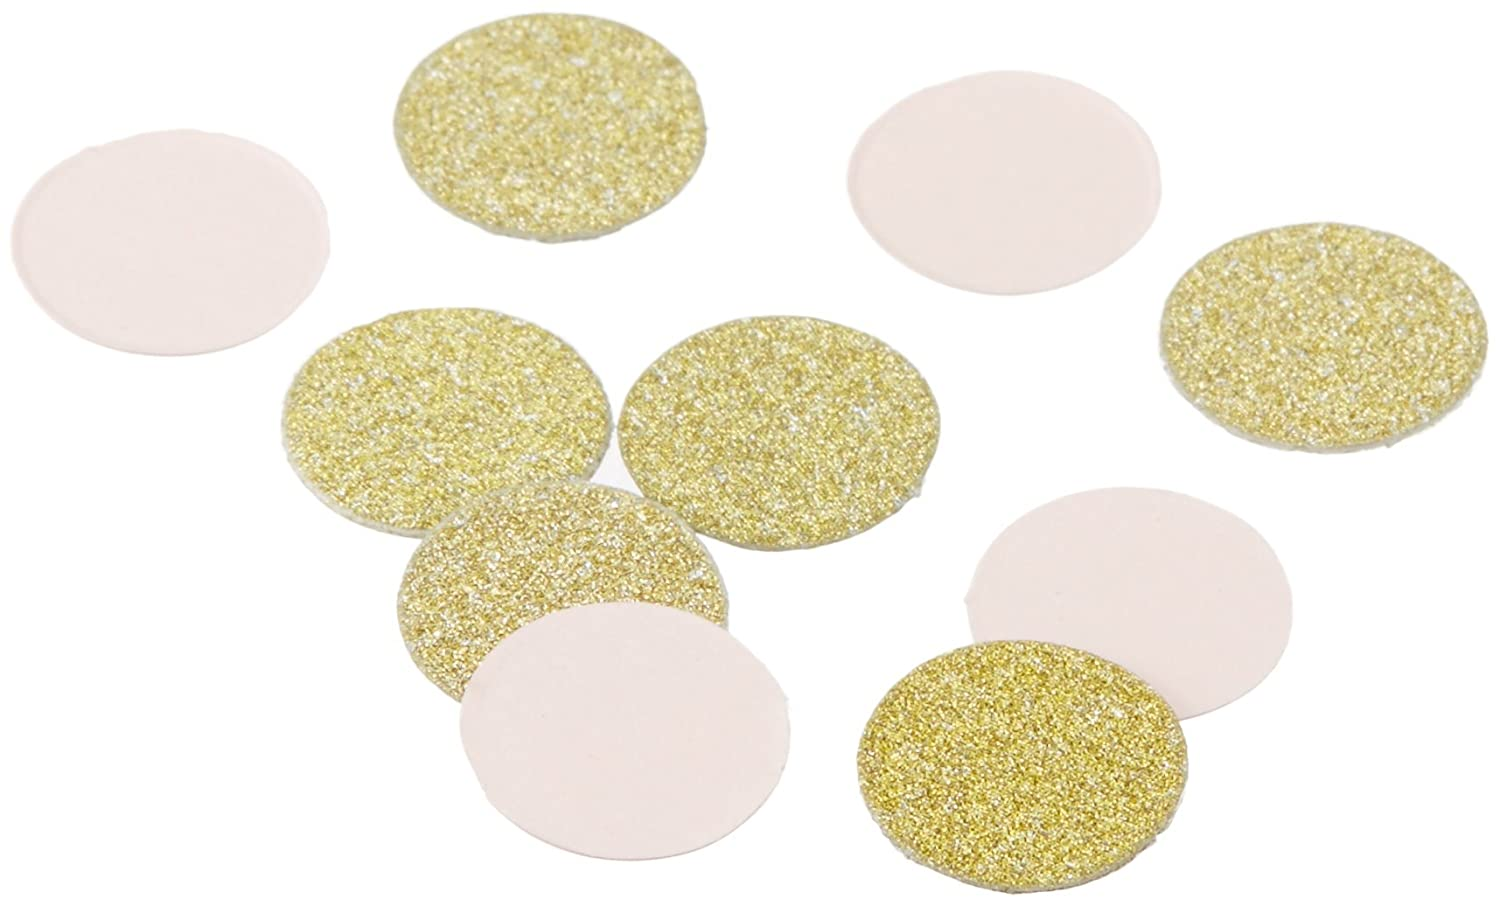 Ginger Ray PP-620 Pastel Perfection Gold Glitter And Pastel WeddingParty Table Confetti Pink